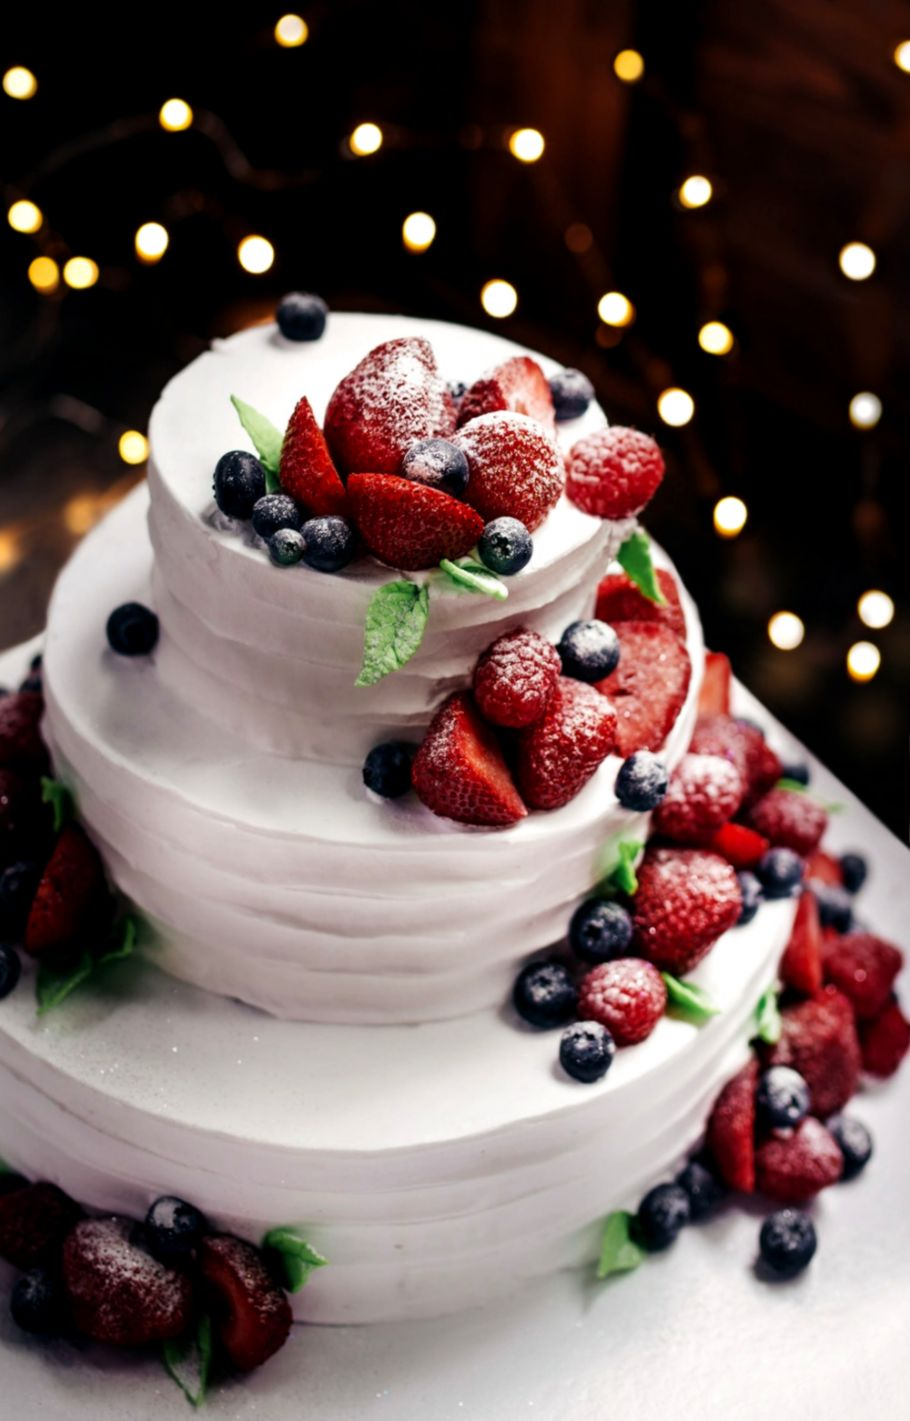 100 Birthday Cake Pictures Download Free Images Stock Photos